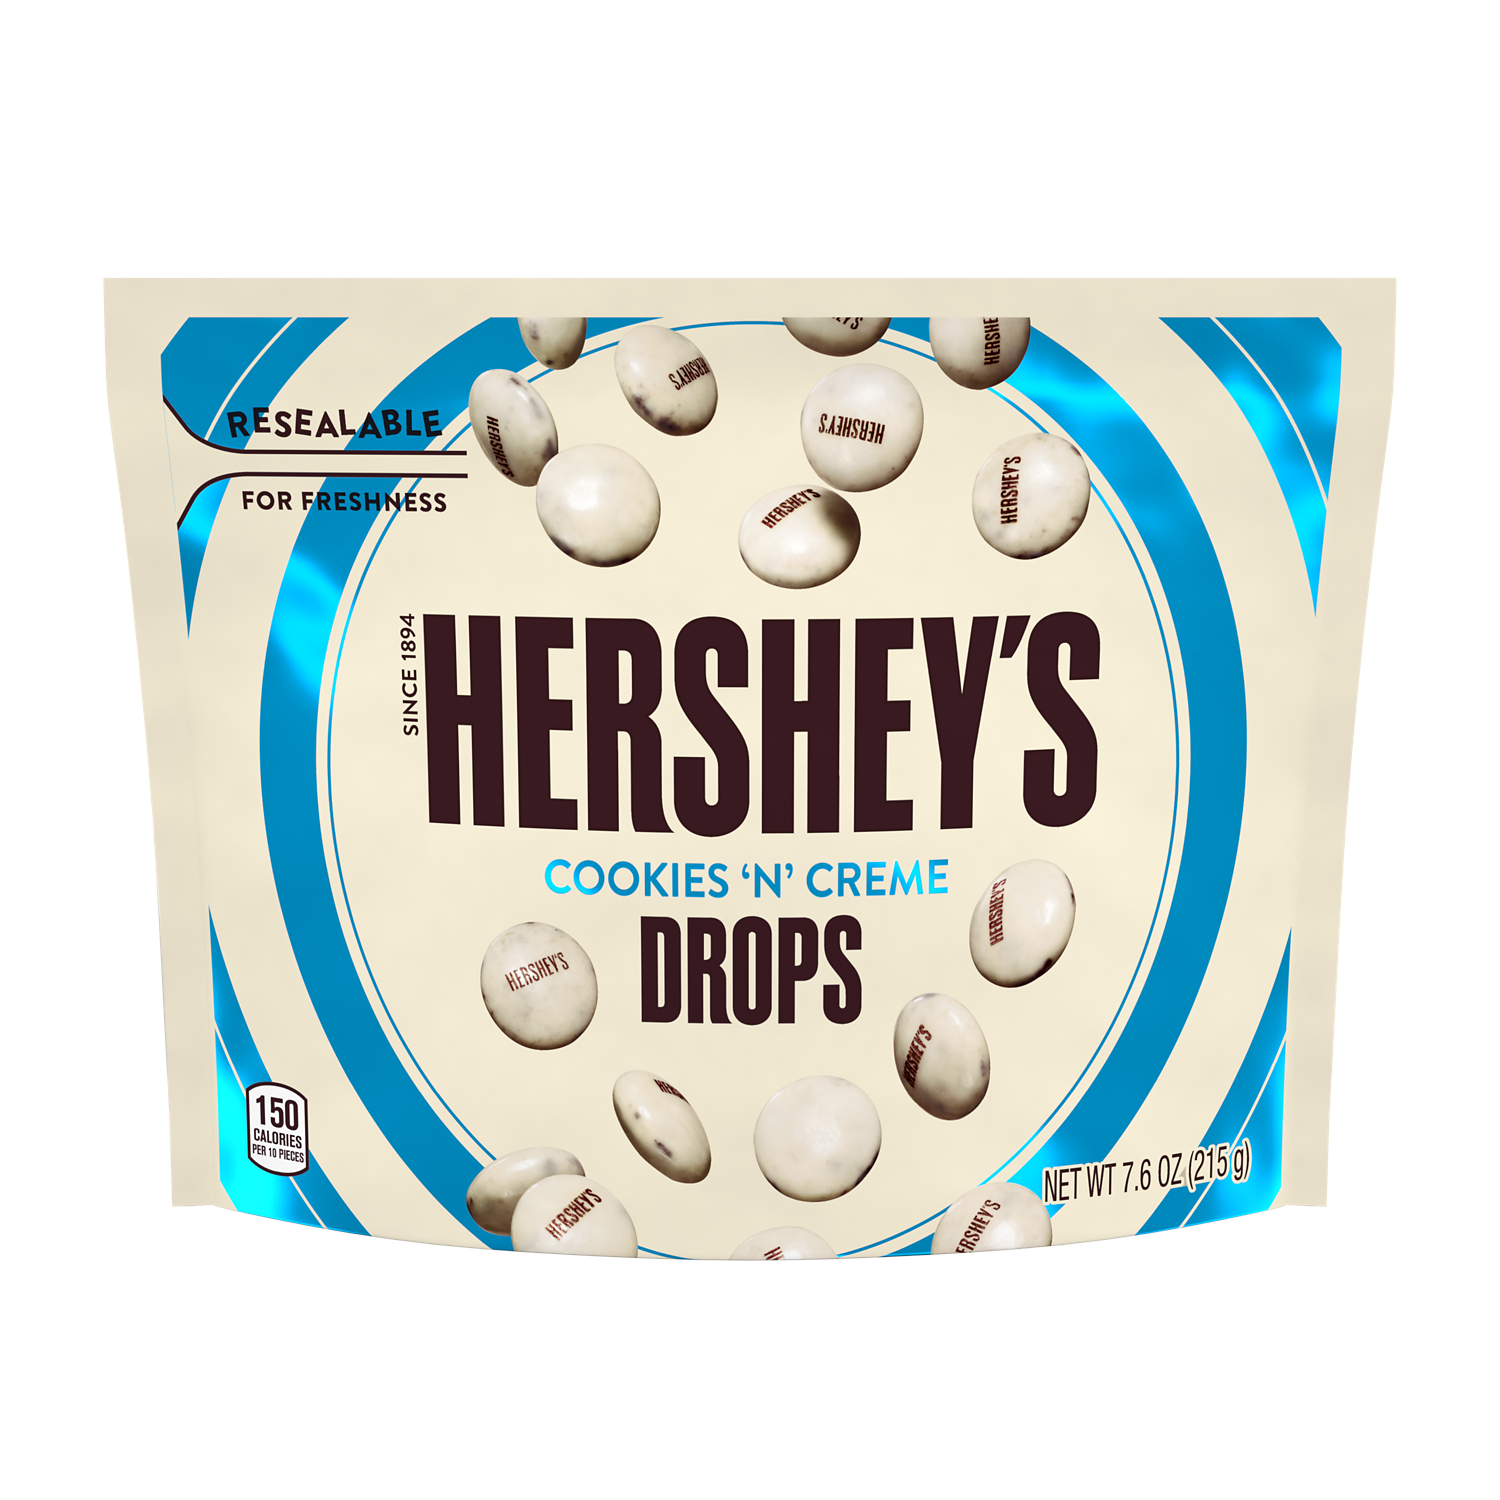 HERSHEY'S DROPS COOKIES 'N' CREME Candy, 7.6 oz bag - Front of Package